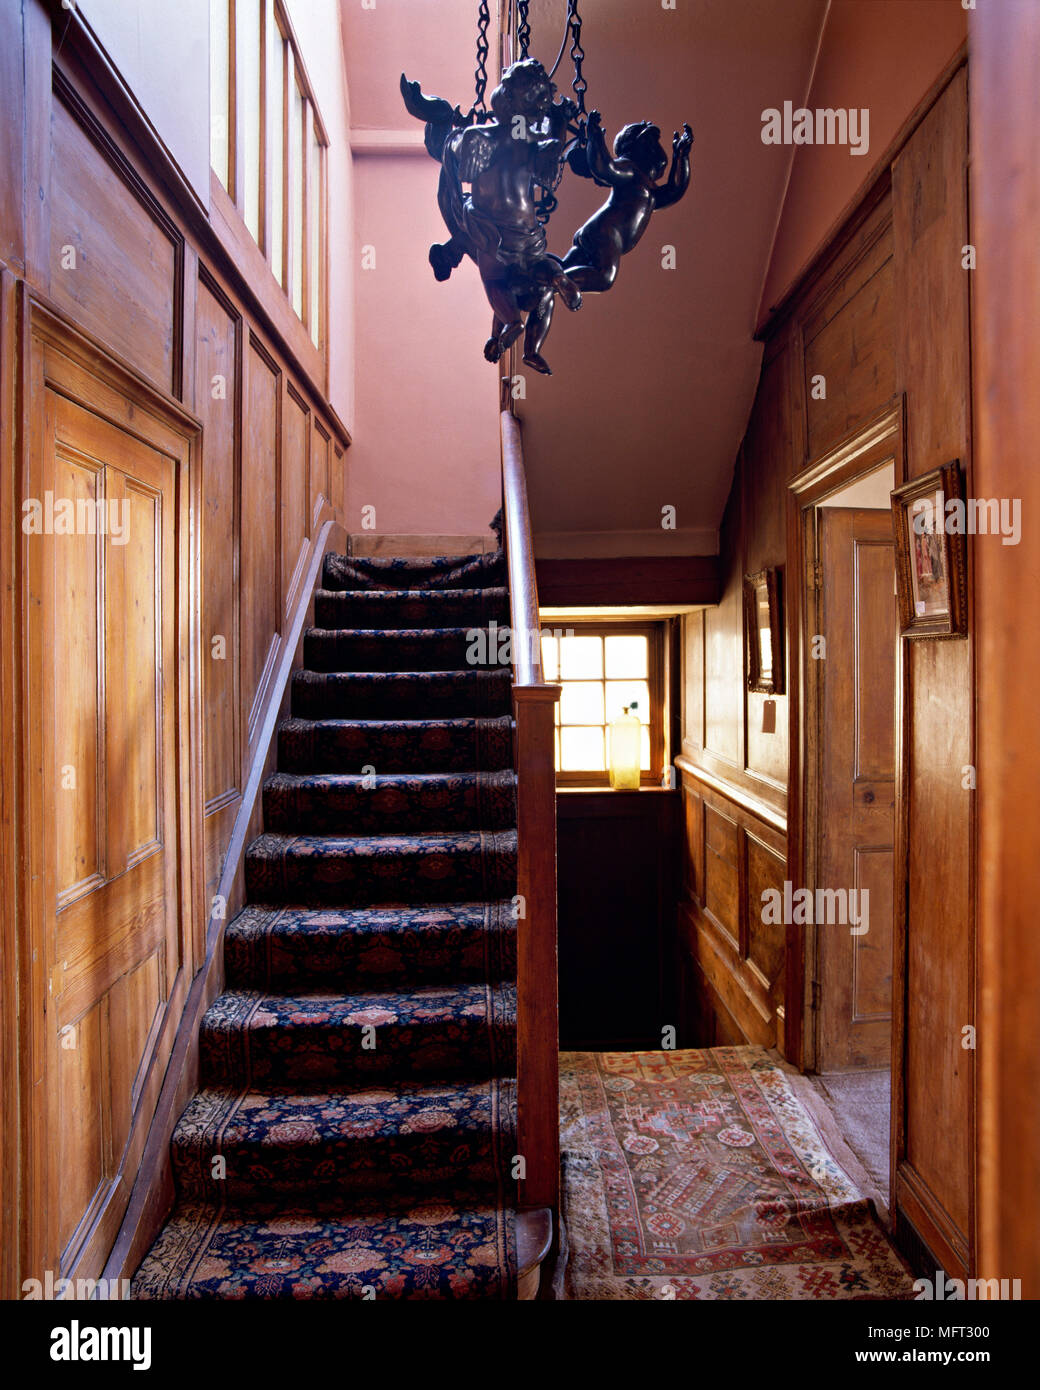 Traditional Hallway Wood Panelling Staircase Carpet Rug Interiors